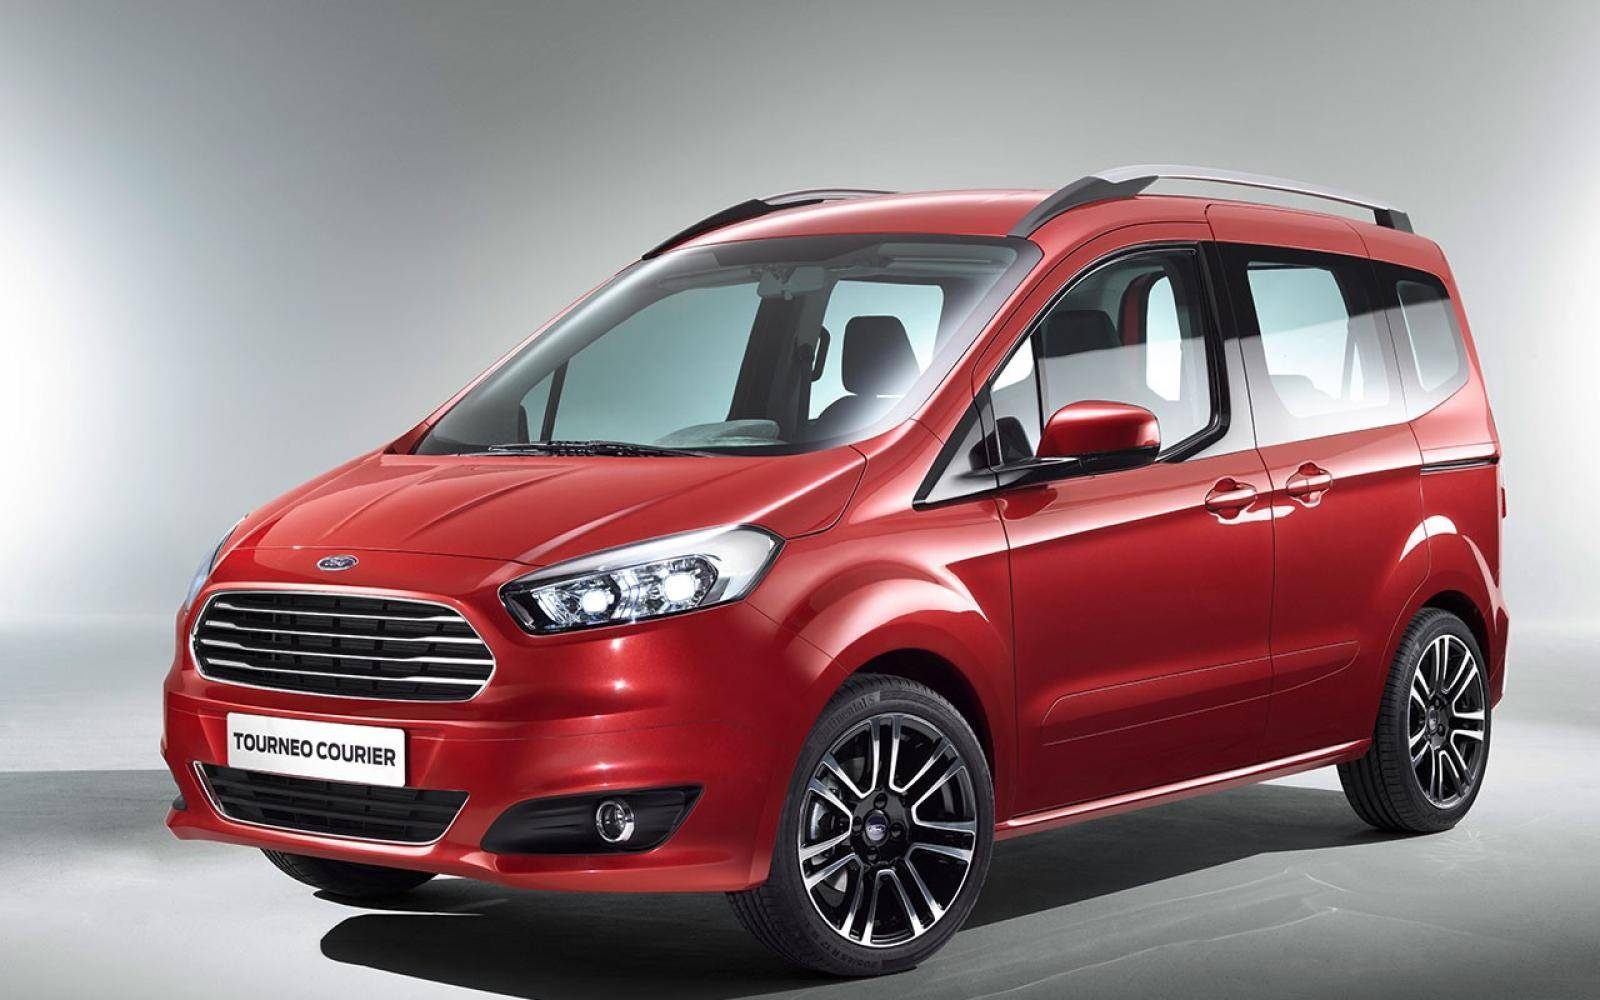 Ford Tourneo Courier Maakt Drietal Compleet Autowereld Com